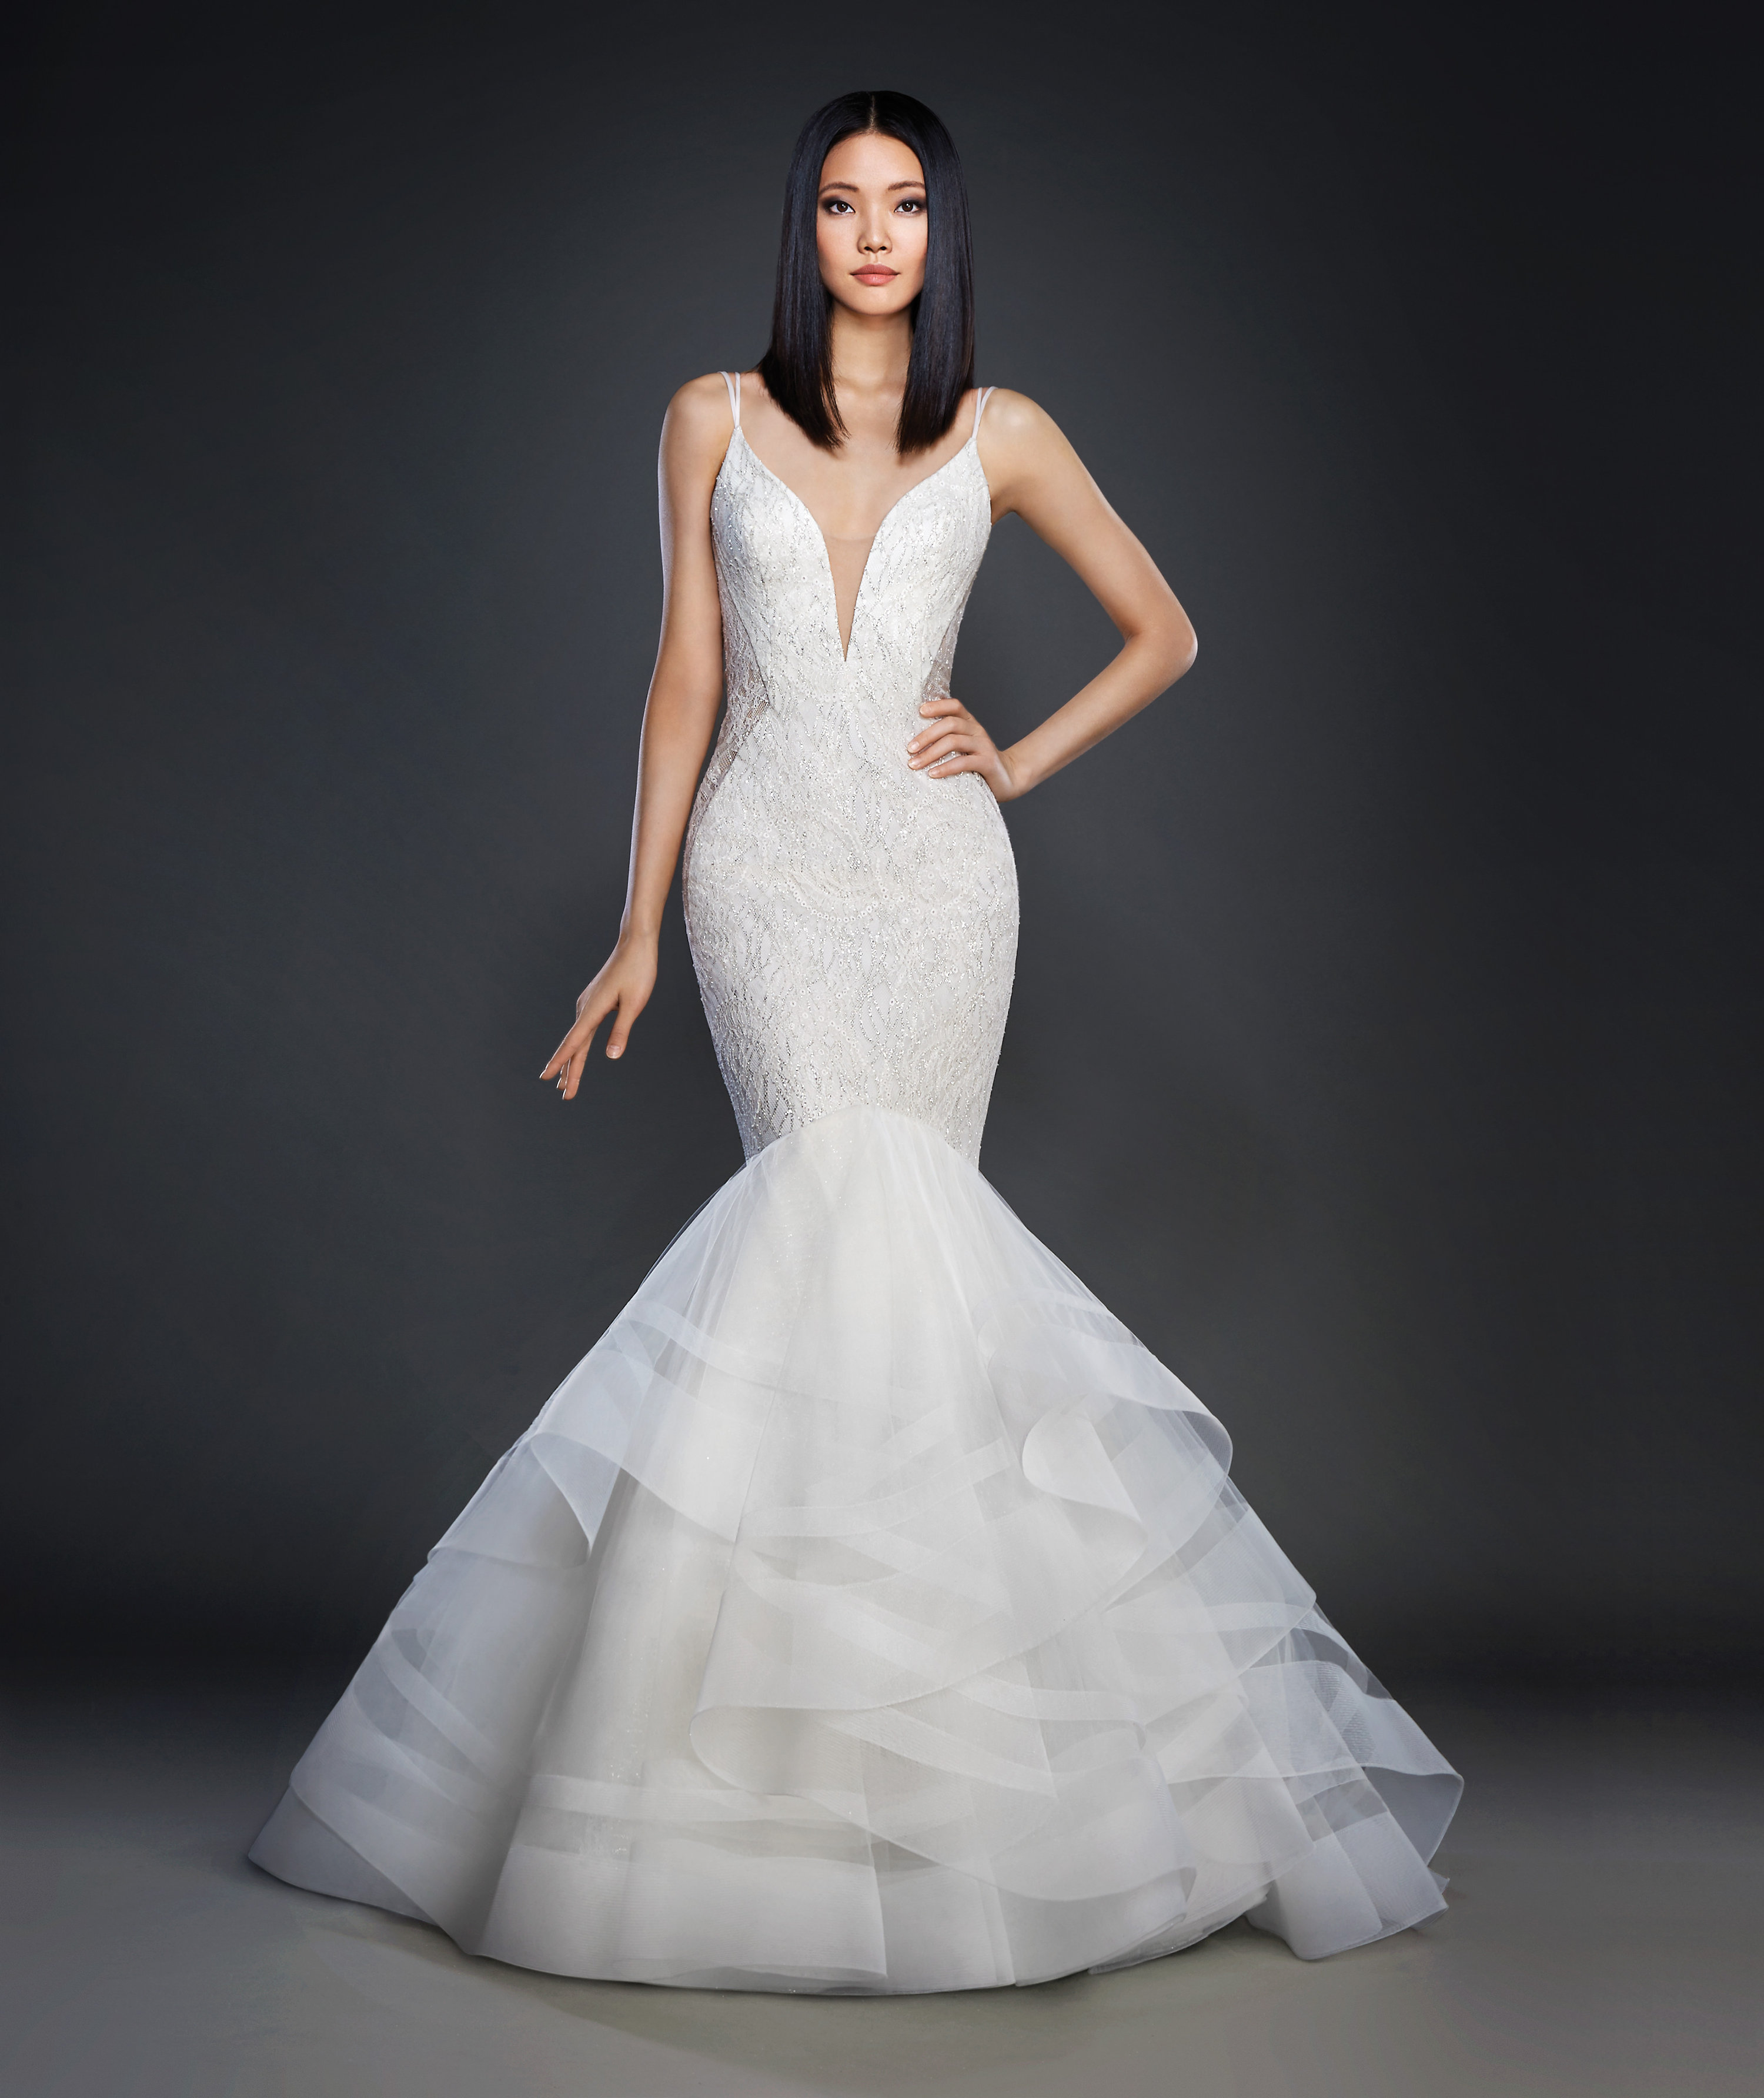 Women's Sexy Mermaid Wedding Dresses